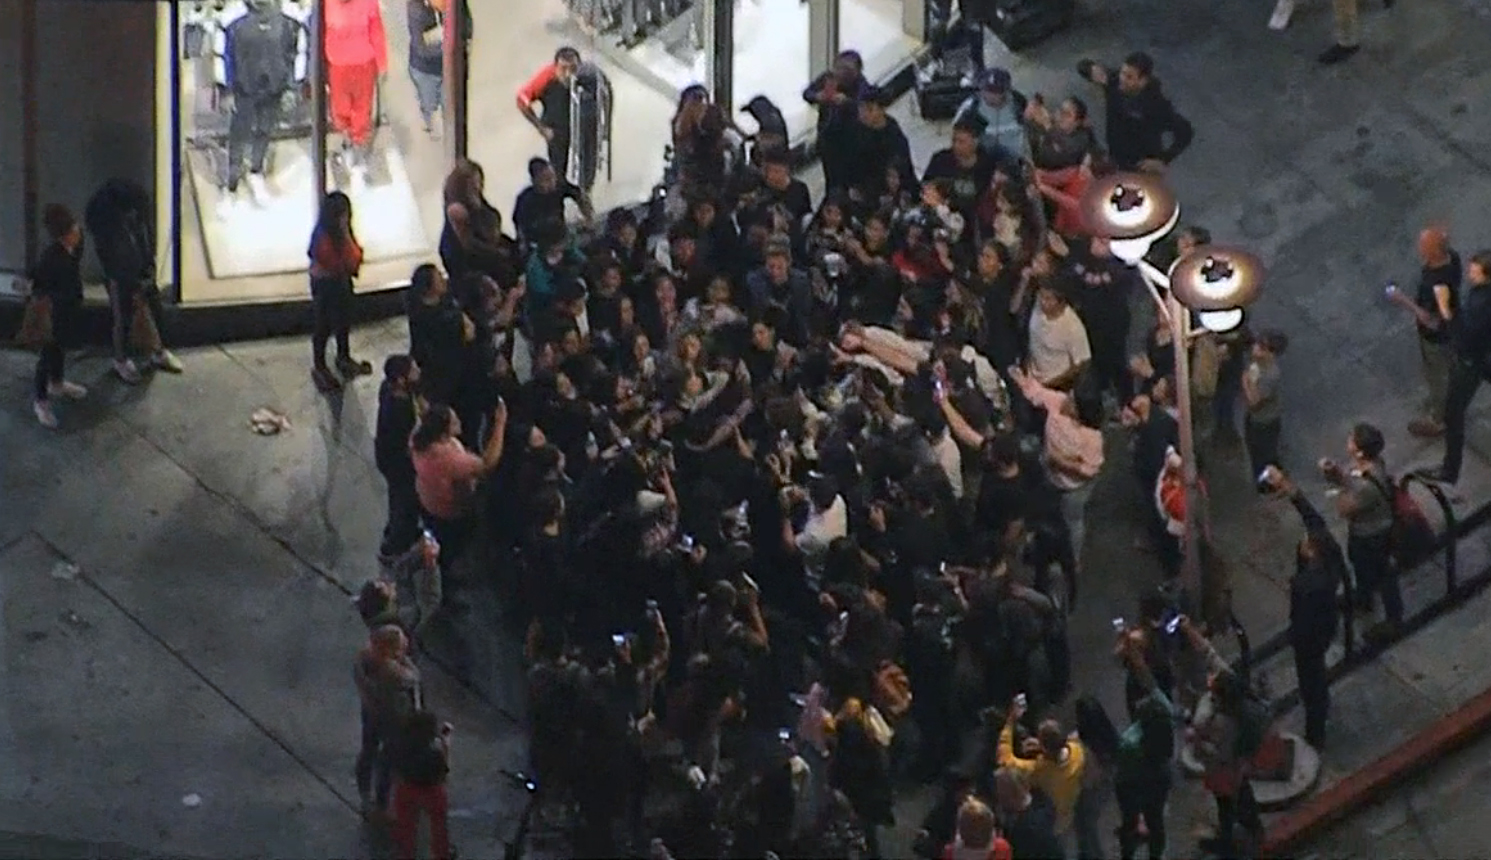 A crowd gathered Monday Oct. 8, 2018 in Hollywood to see rapper Phora.